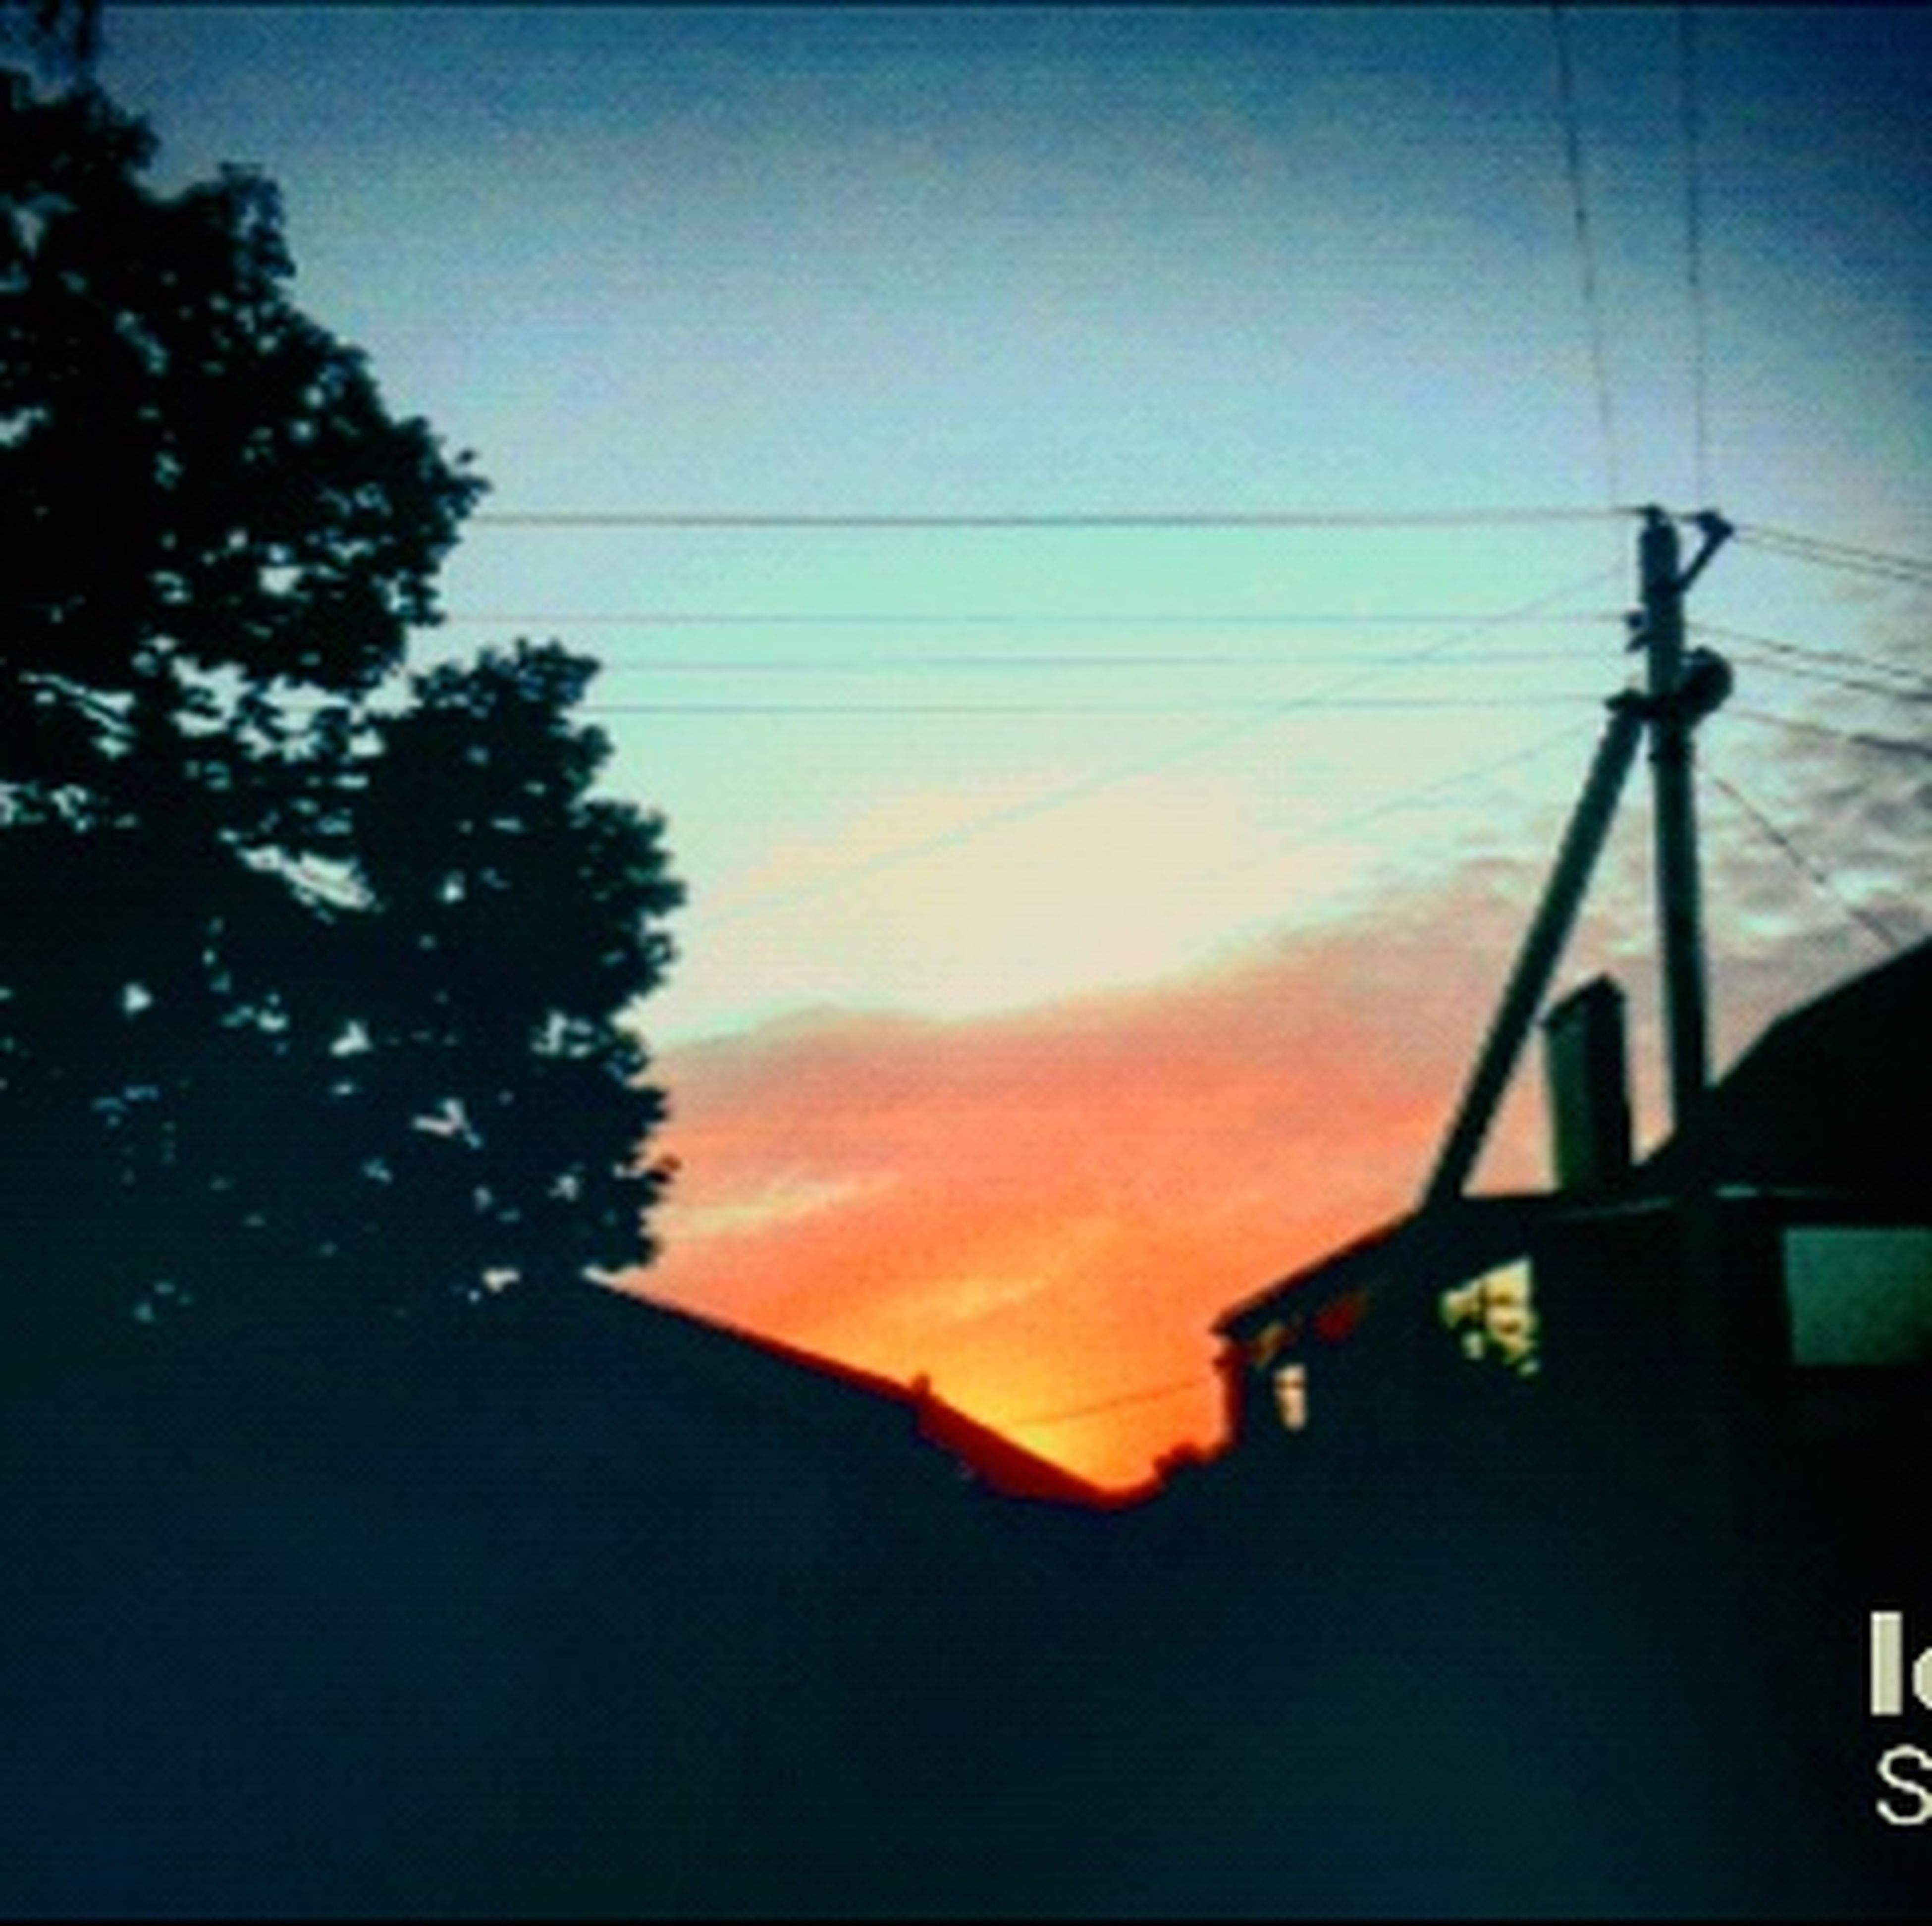 silhouette, tree, sunset, tranquil scene, outline, tranquility, low angle view, dusk, sky, scenics, power line, beauty in nature, blue, nature, cable, dark, cloud, outdoors, high section, calm, no people, solitude, moody sky, remote, telephone line, rooftop